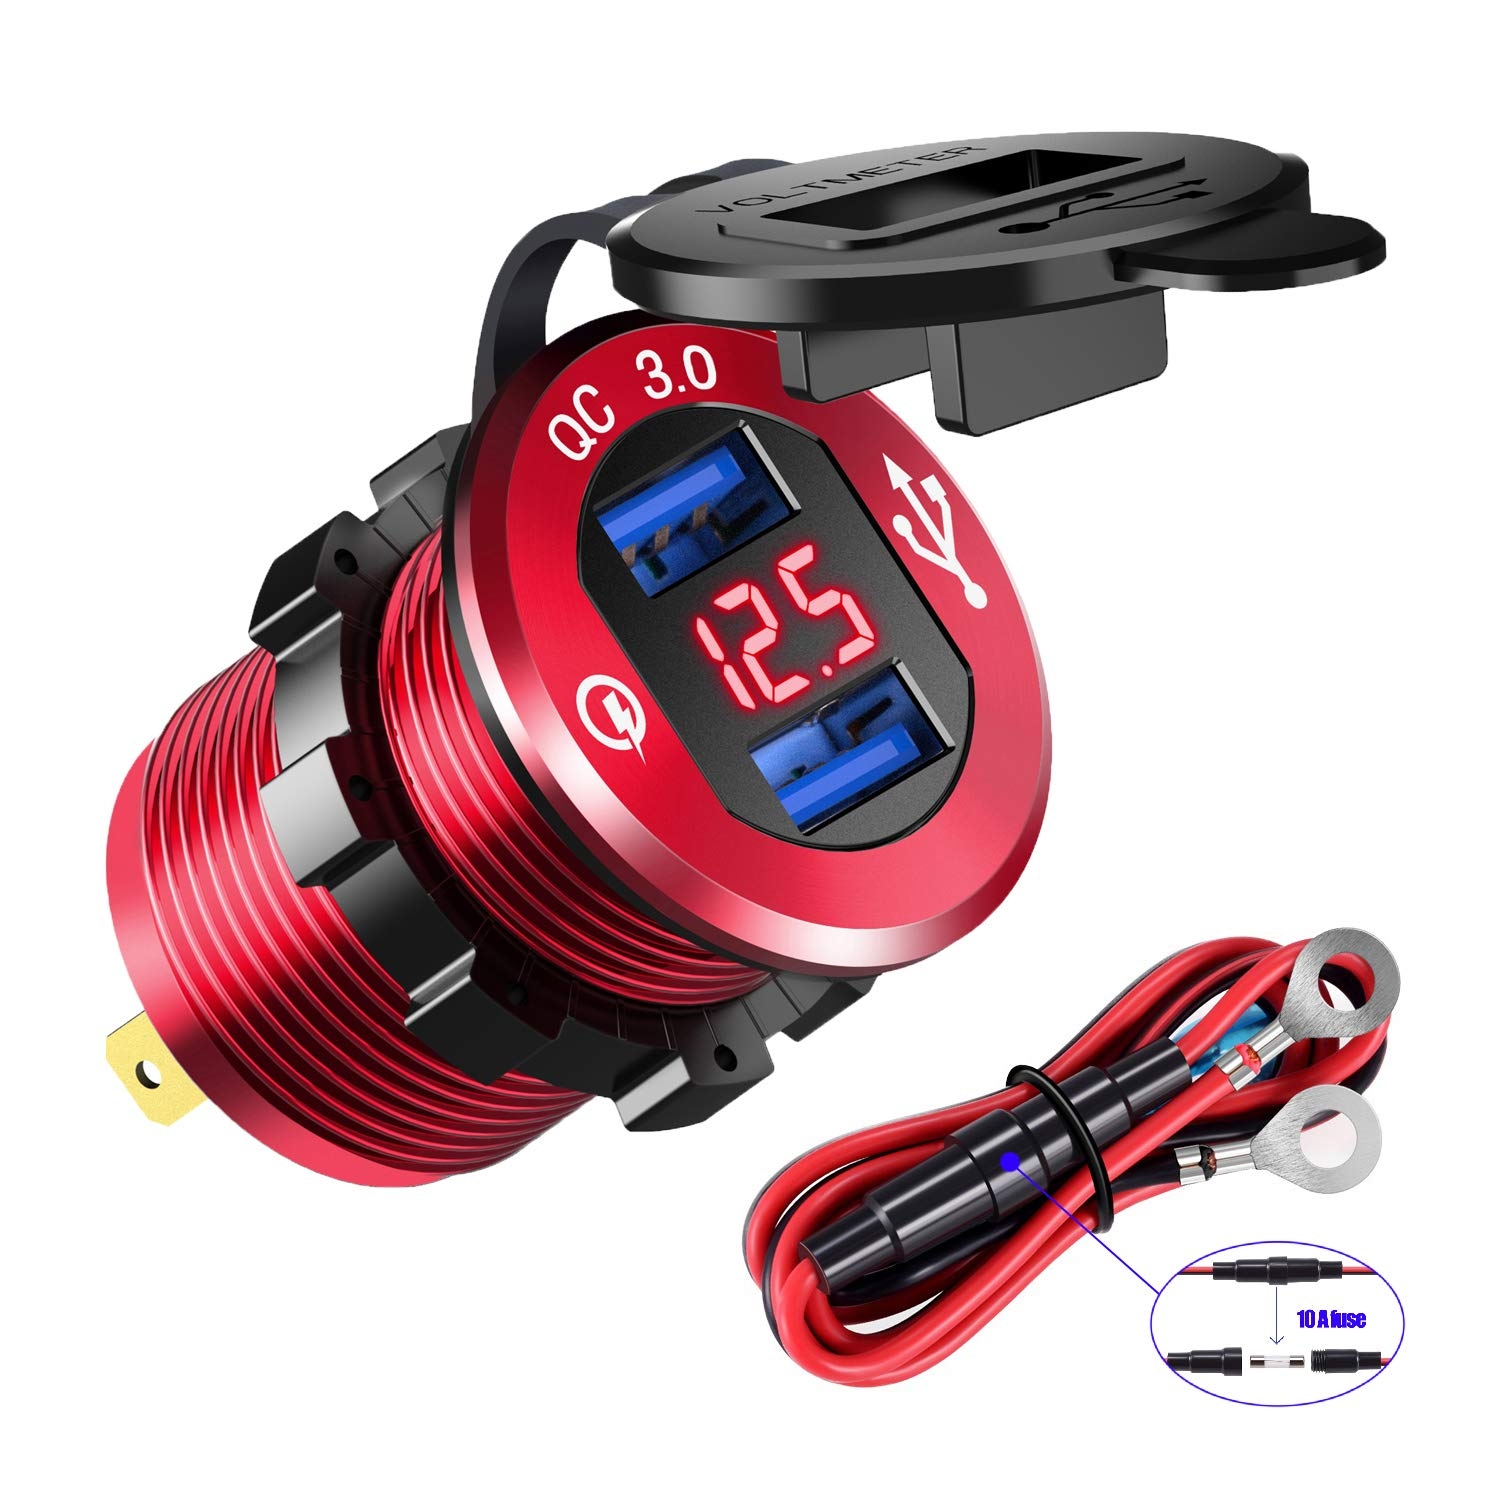 YONHAN Quick Charge 3.0 Dual USB Charger Socket, Waterproof Power Outlet Fast Charge with LED Voltmeter & Wire Fuse DIY Kit for 12V/24V Car Boat Marine ATV Bus Truck and More - Red by YONHAN